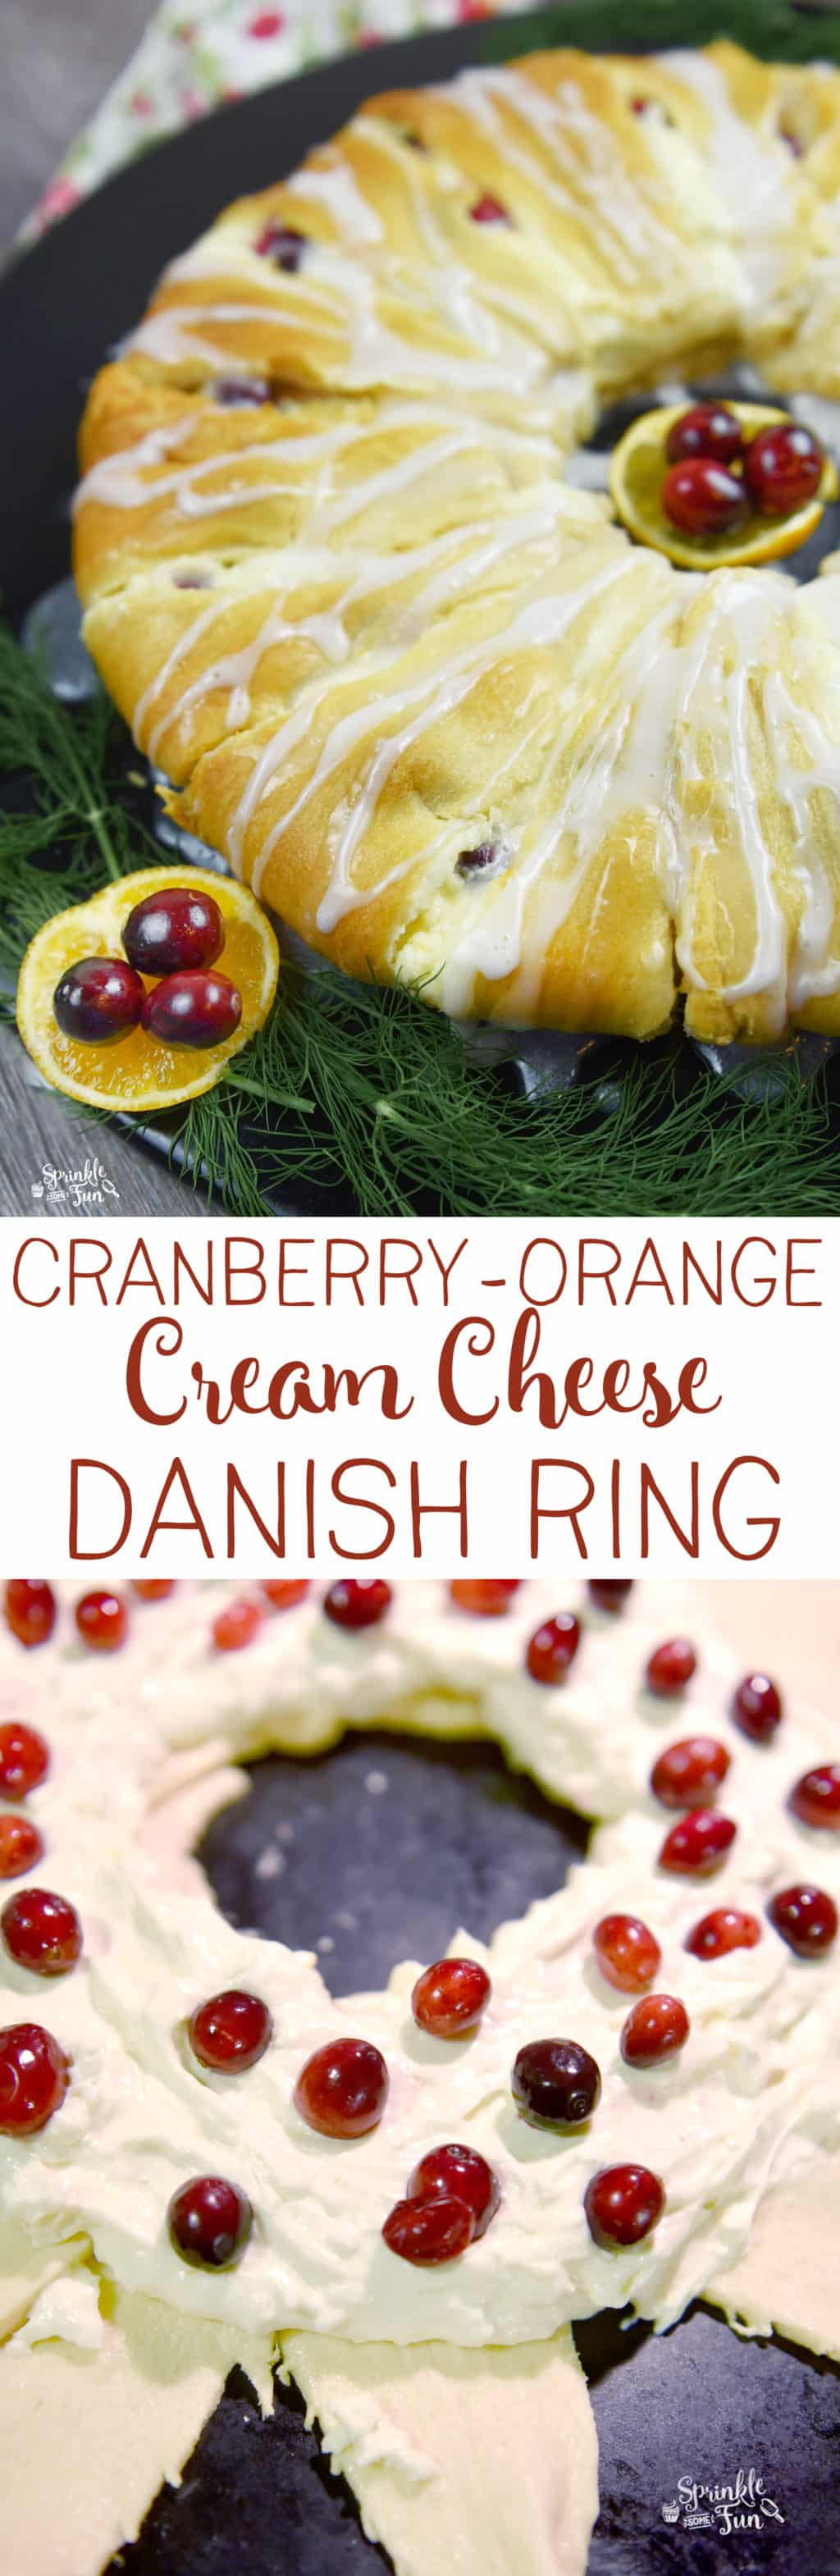 It's easy to make a Cranberry-Orange Cream Cheese Danish Ring w/ a sweet and creamy danish cheese filling inside a ring of crescent rolls!